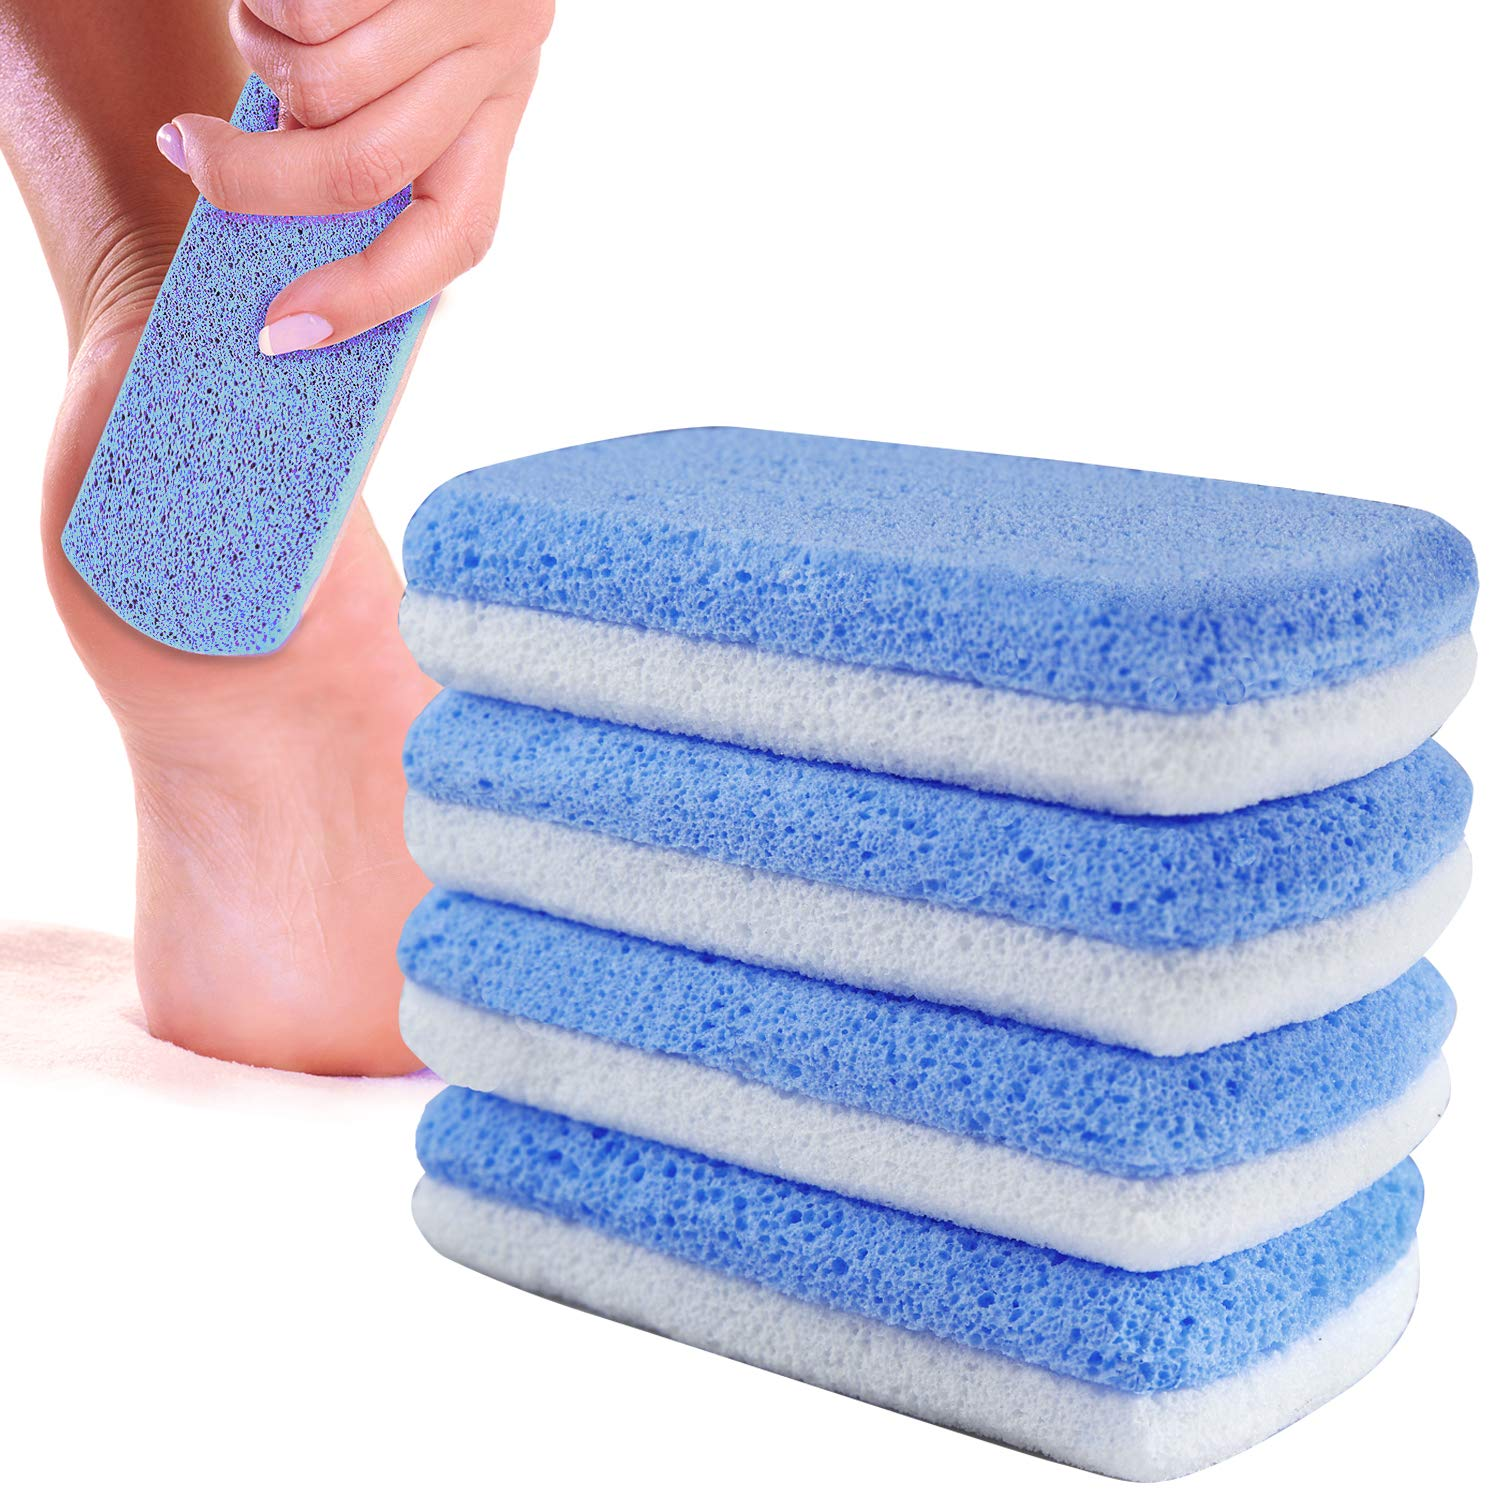 Our shop most popular Pumice Stone for Feet and Hands - in Callus Max 48% OFF 2 Remover Premium 1